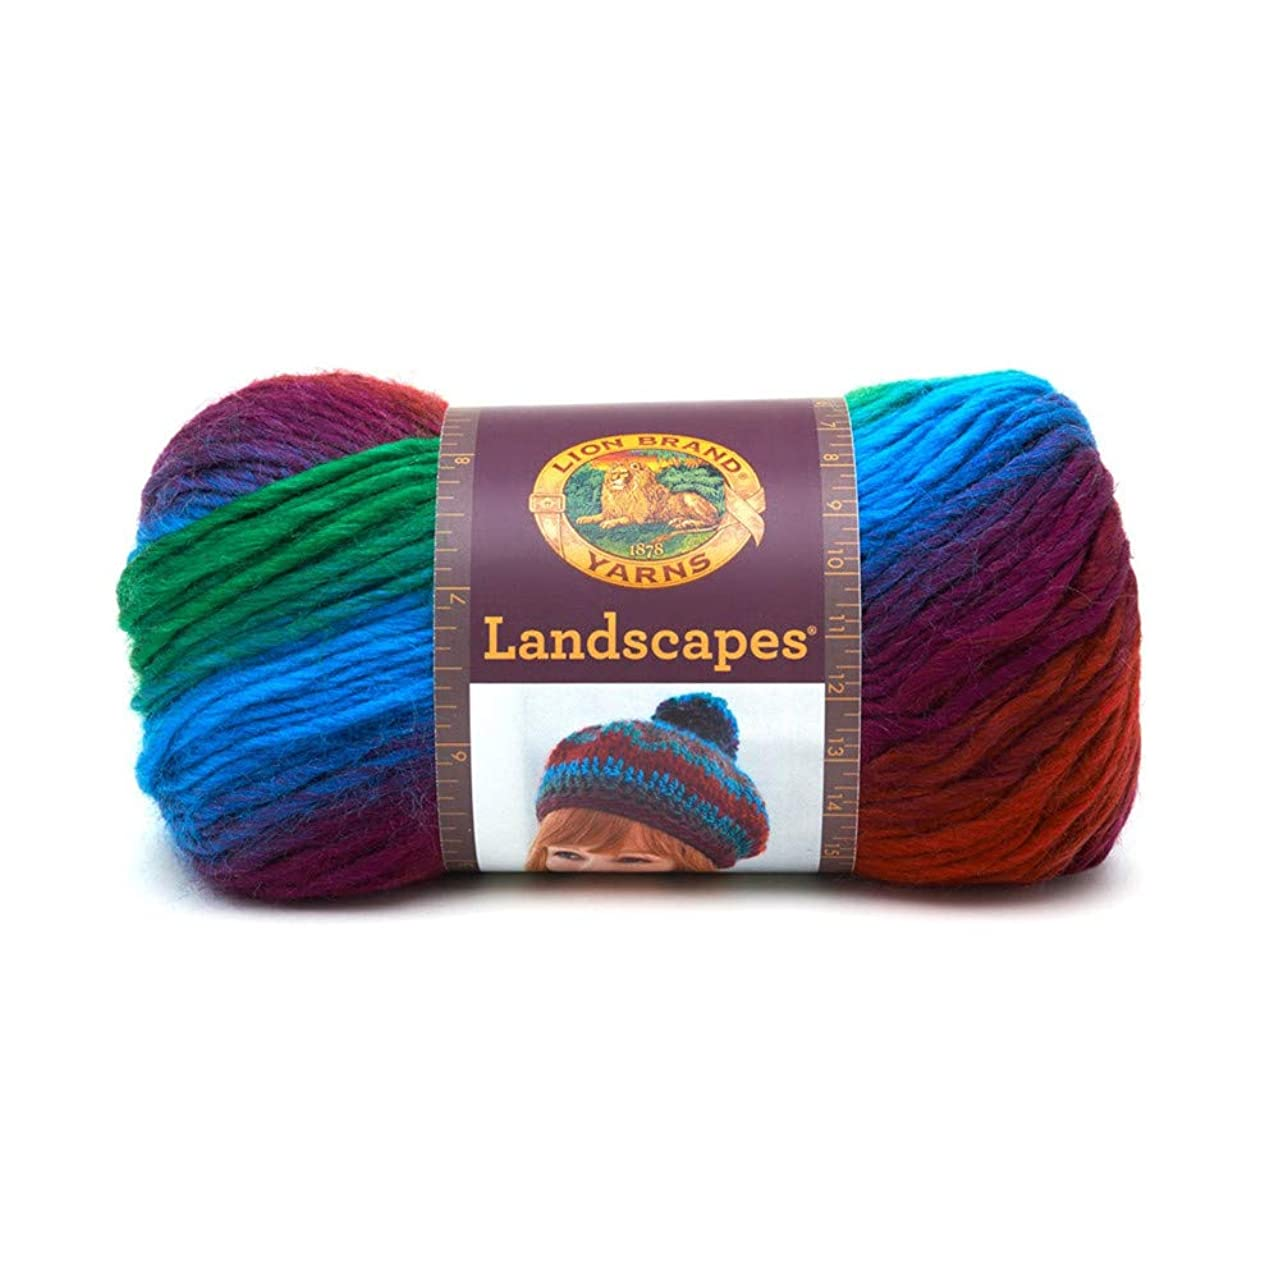 Paracord Planet Landscapes Yarn – 147 Yards – Made with Acrylic Fibers – Knitting Crochet Apparel